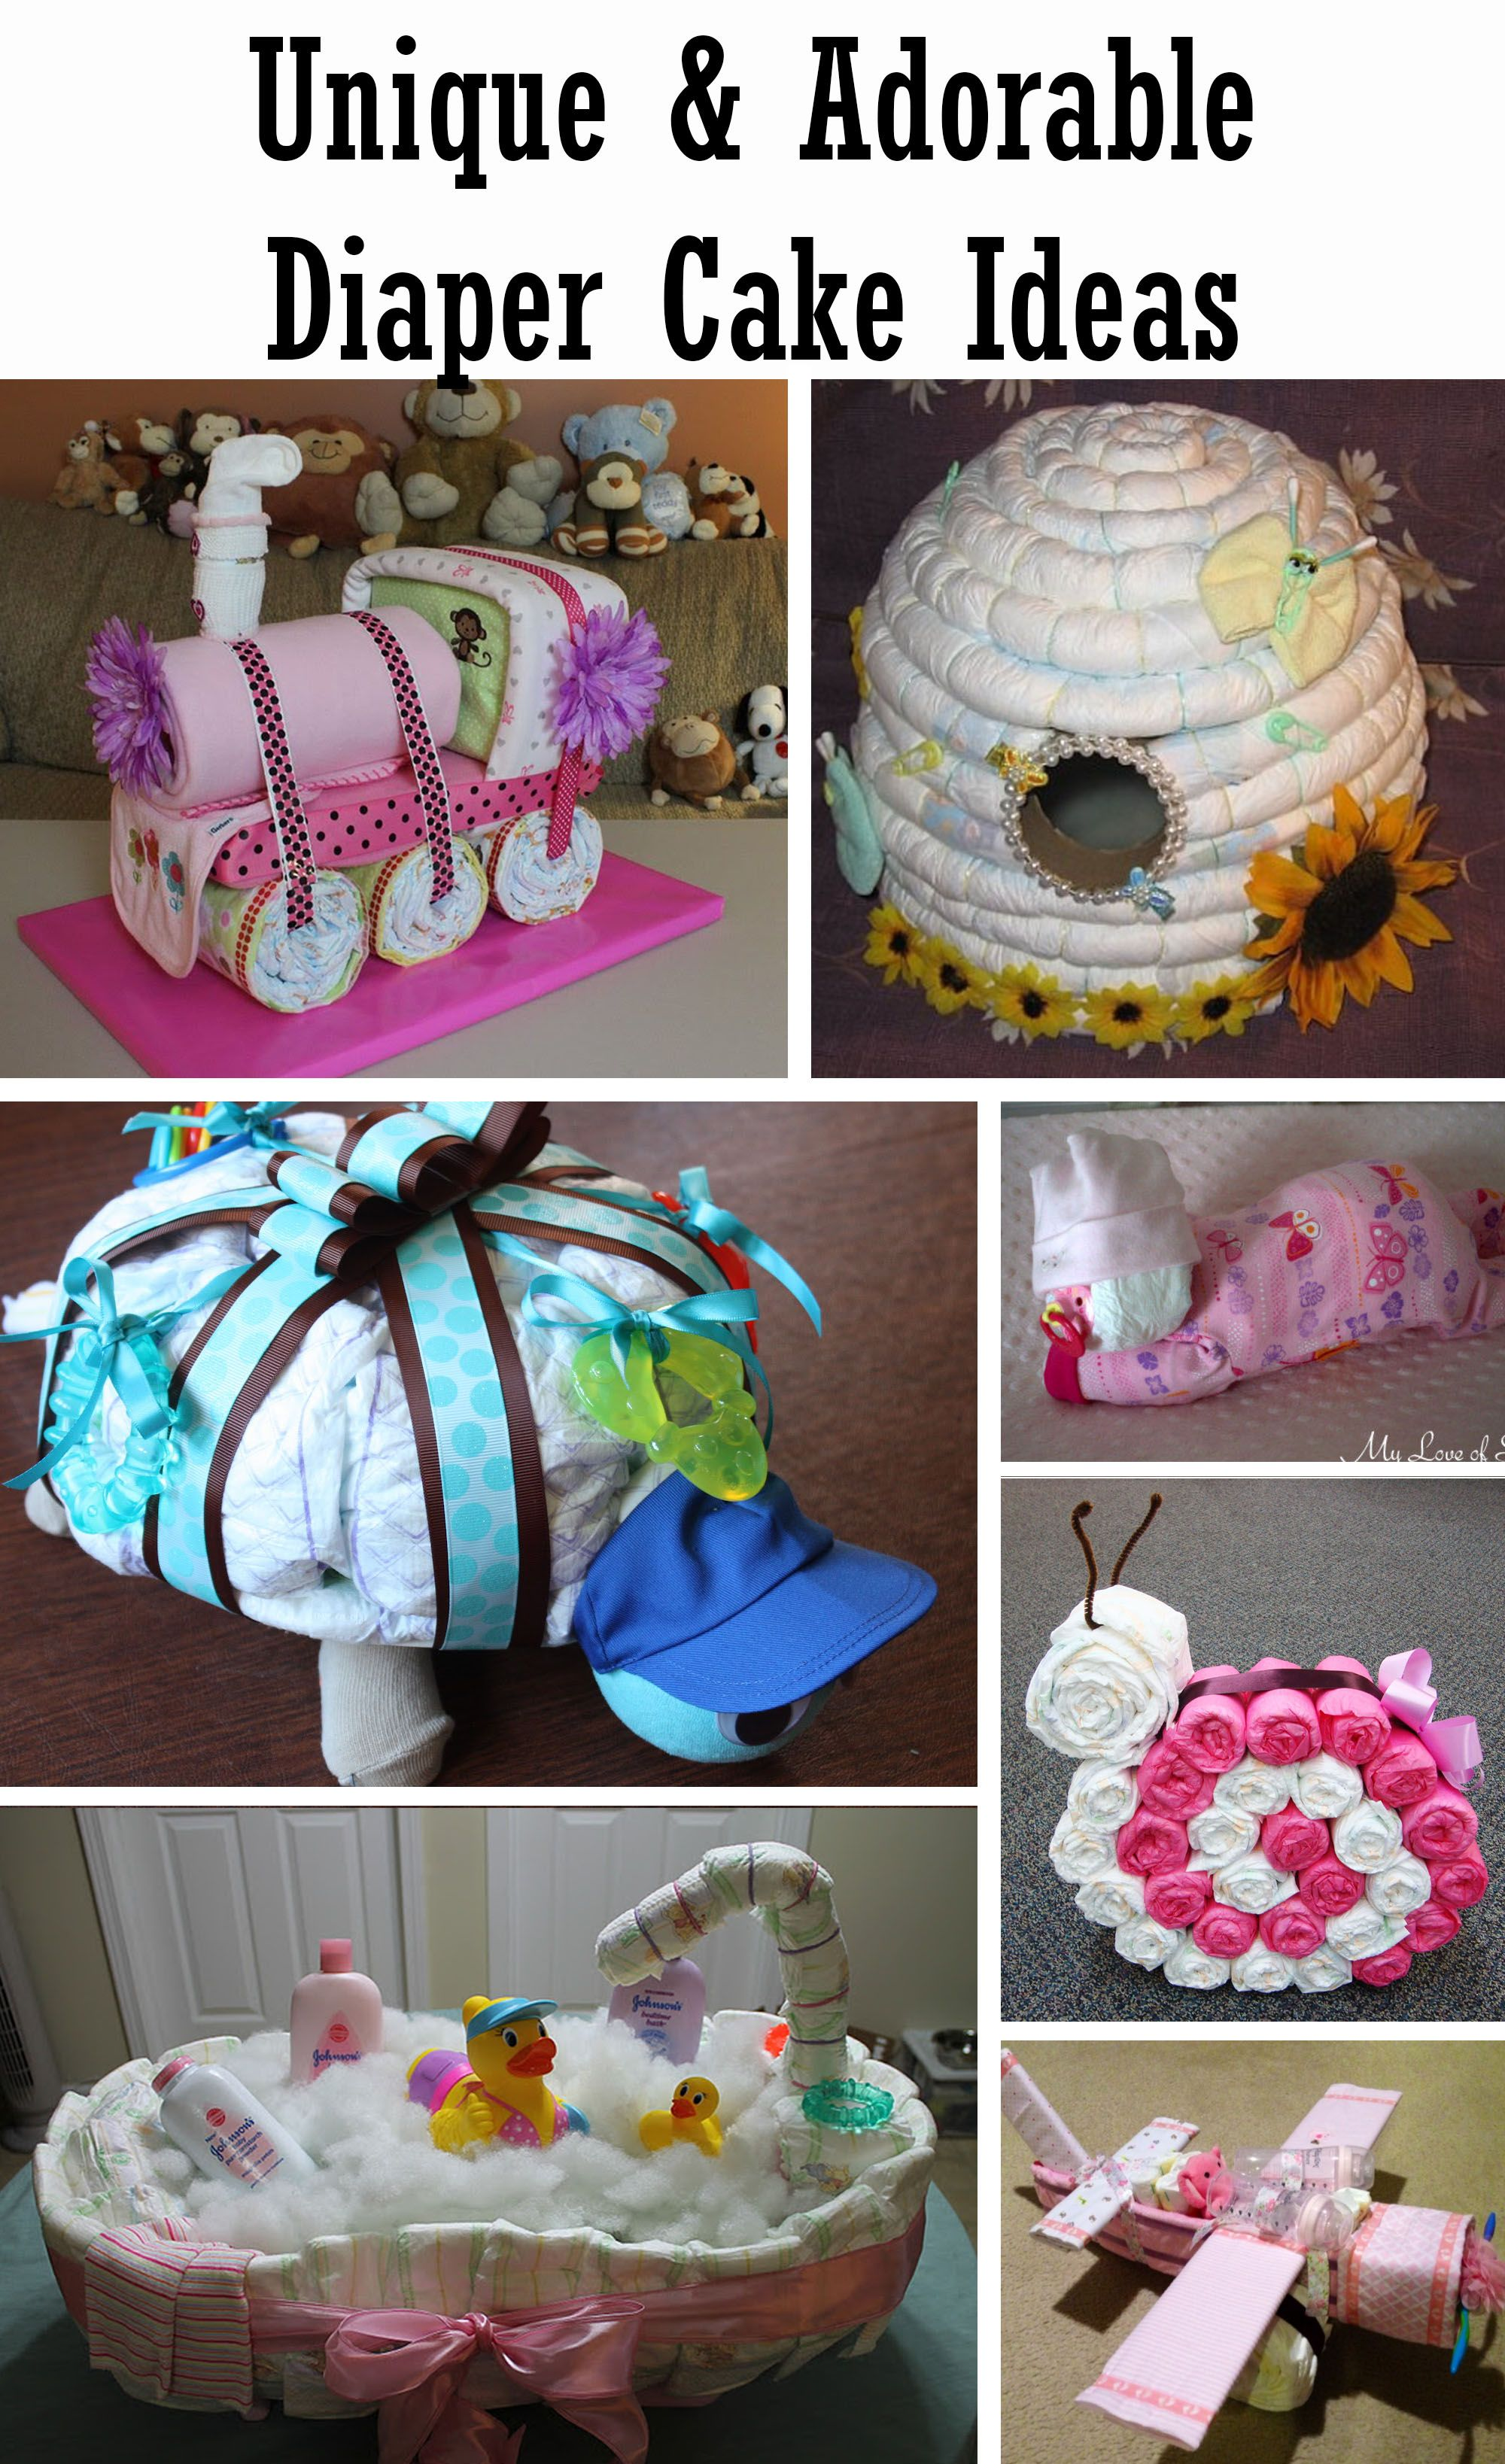 Adorable Diaper Cake Ideas With Images Diaper Cake Boy Diy